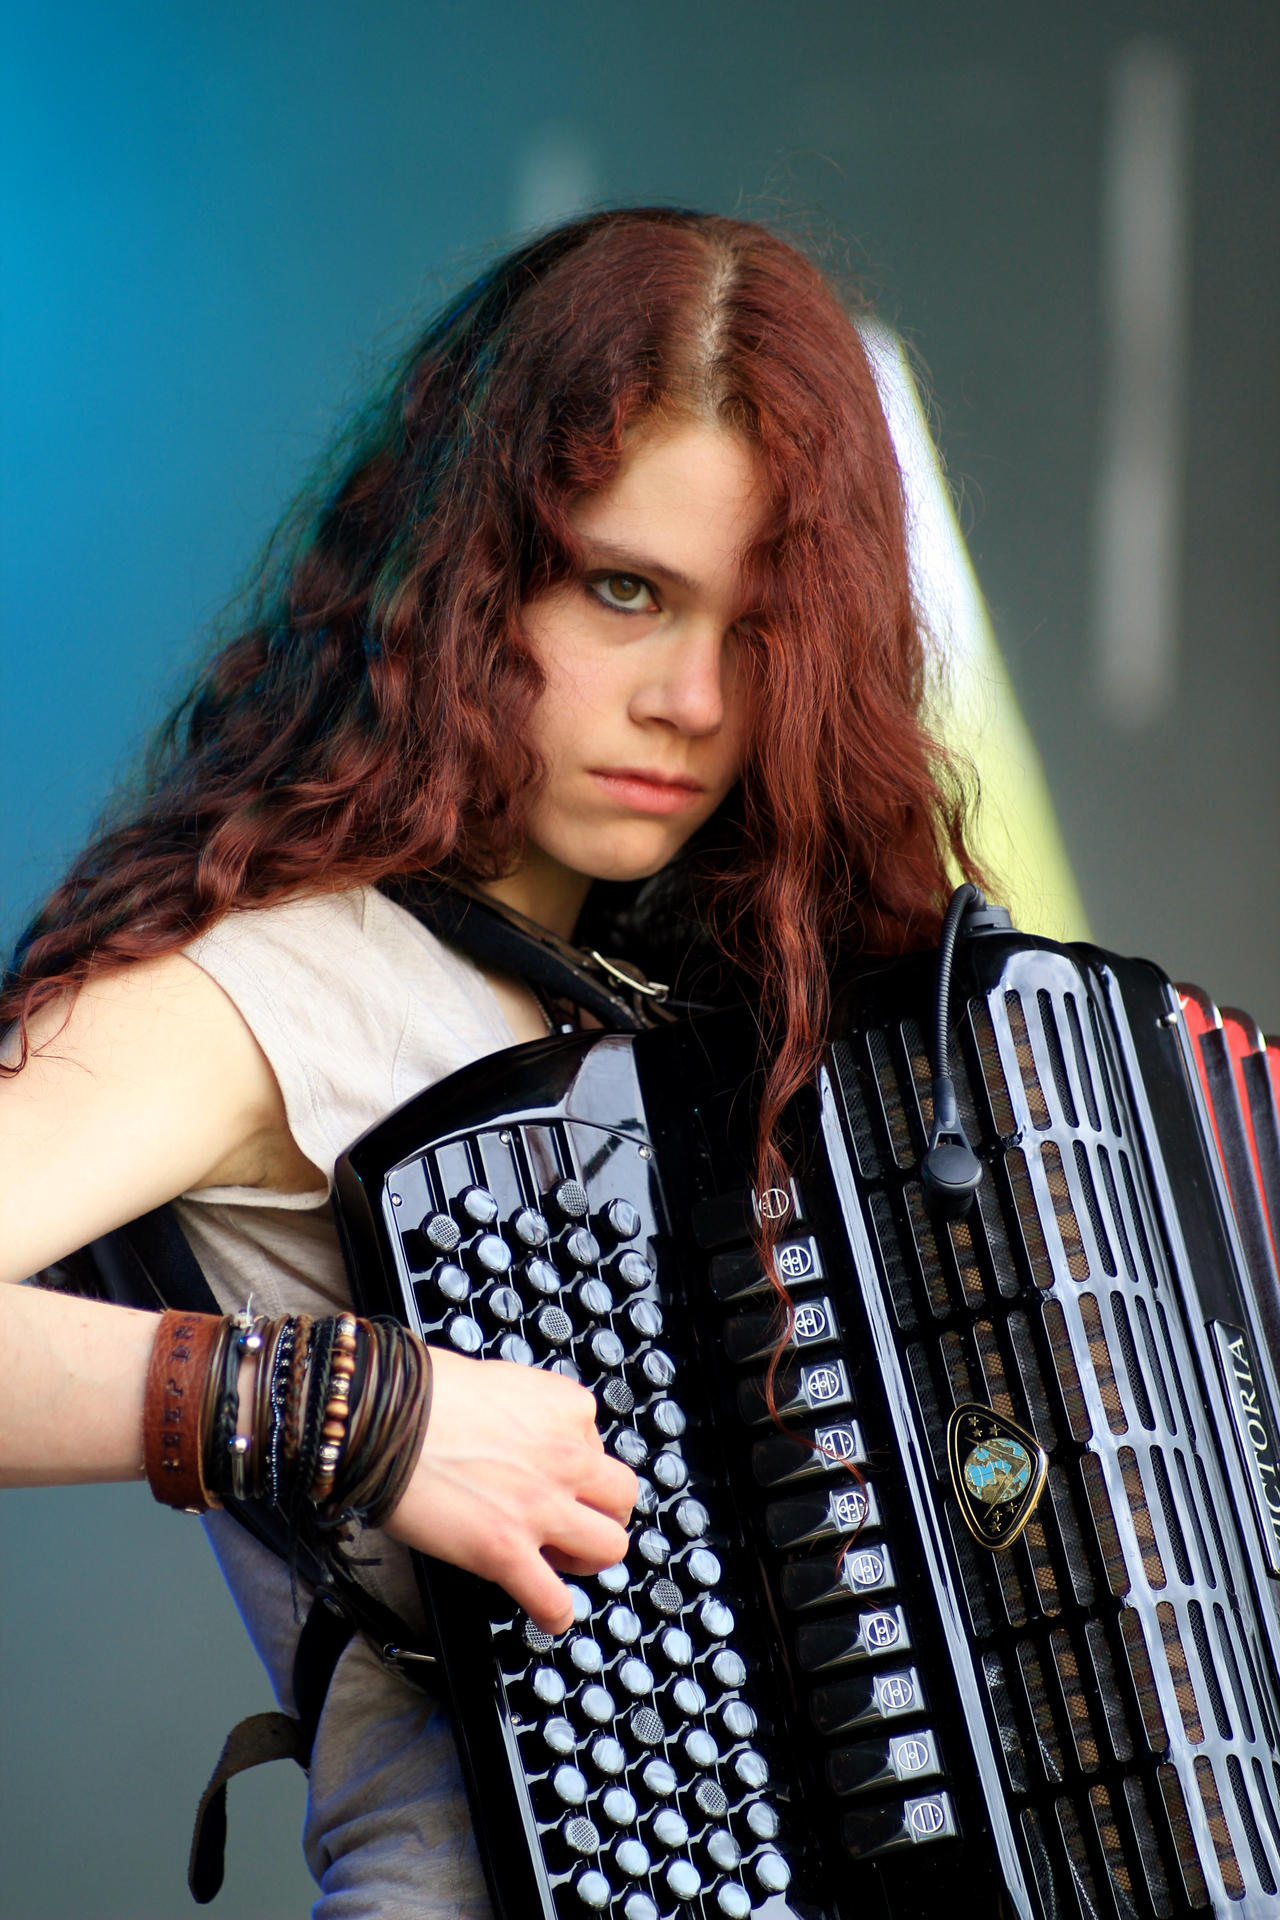 keltfest 2012 068 by pagan-live-style